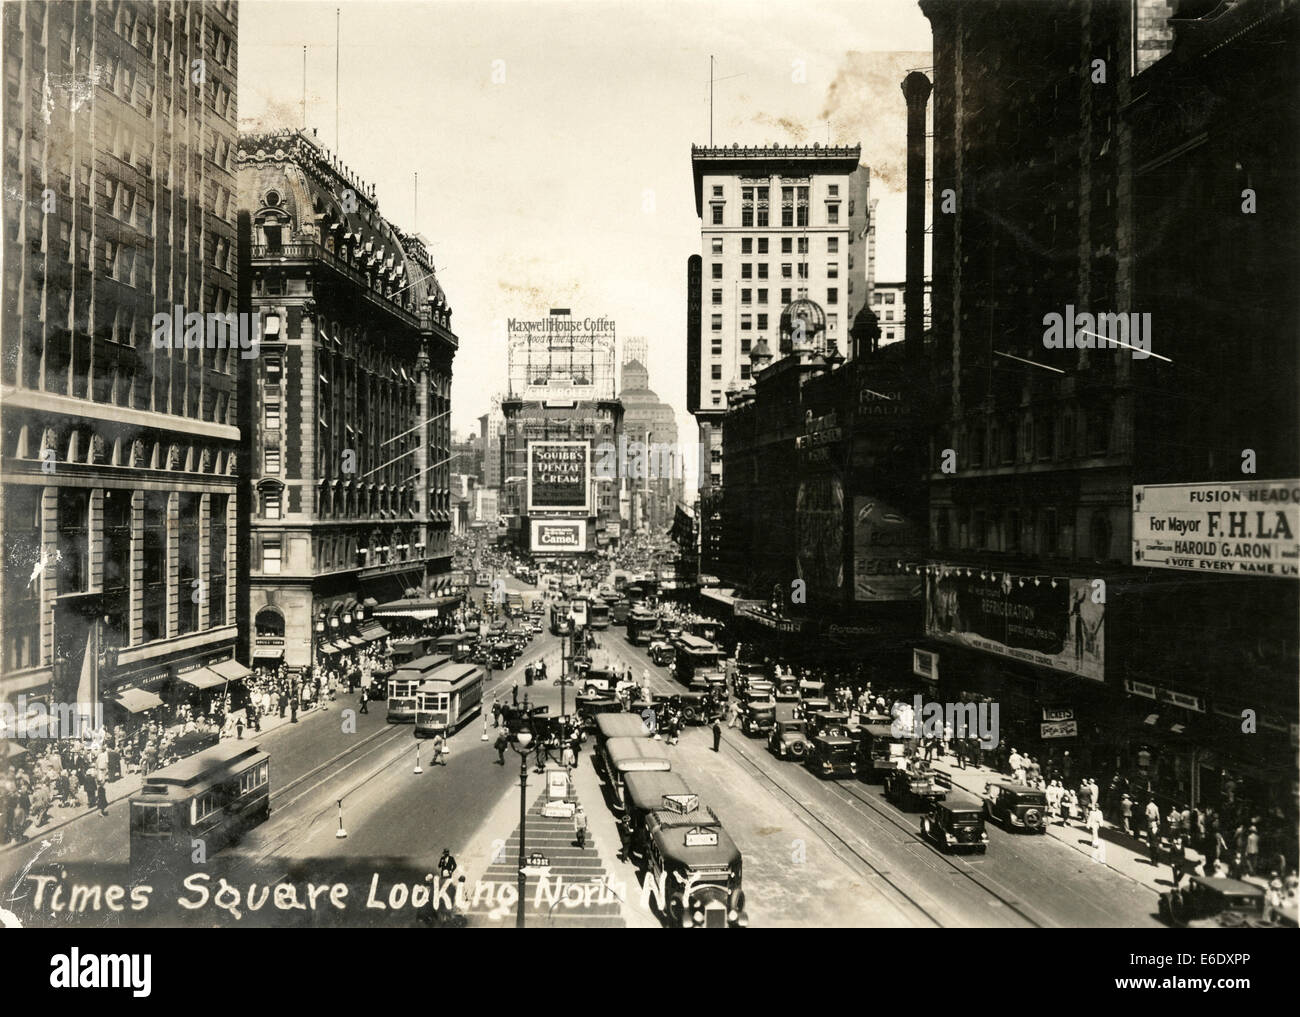 Times Square Looking North from 42nd Street, New York City, USA, circa 1933 - Stock Image